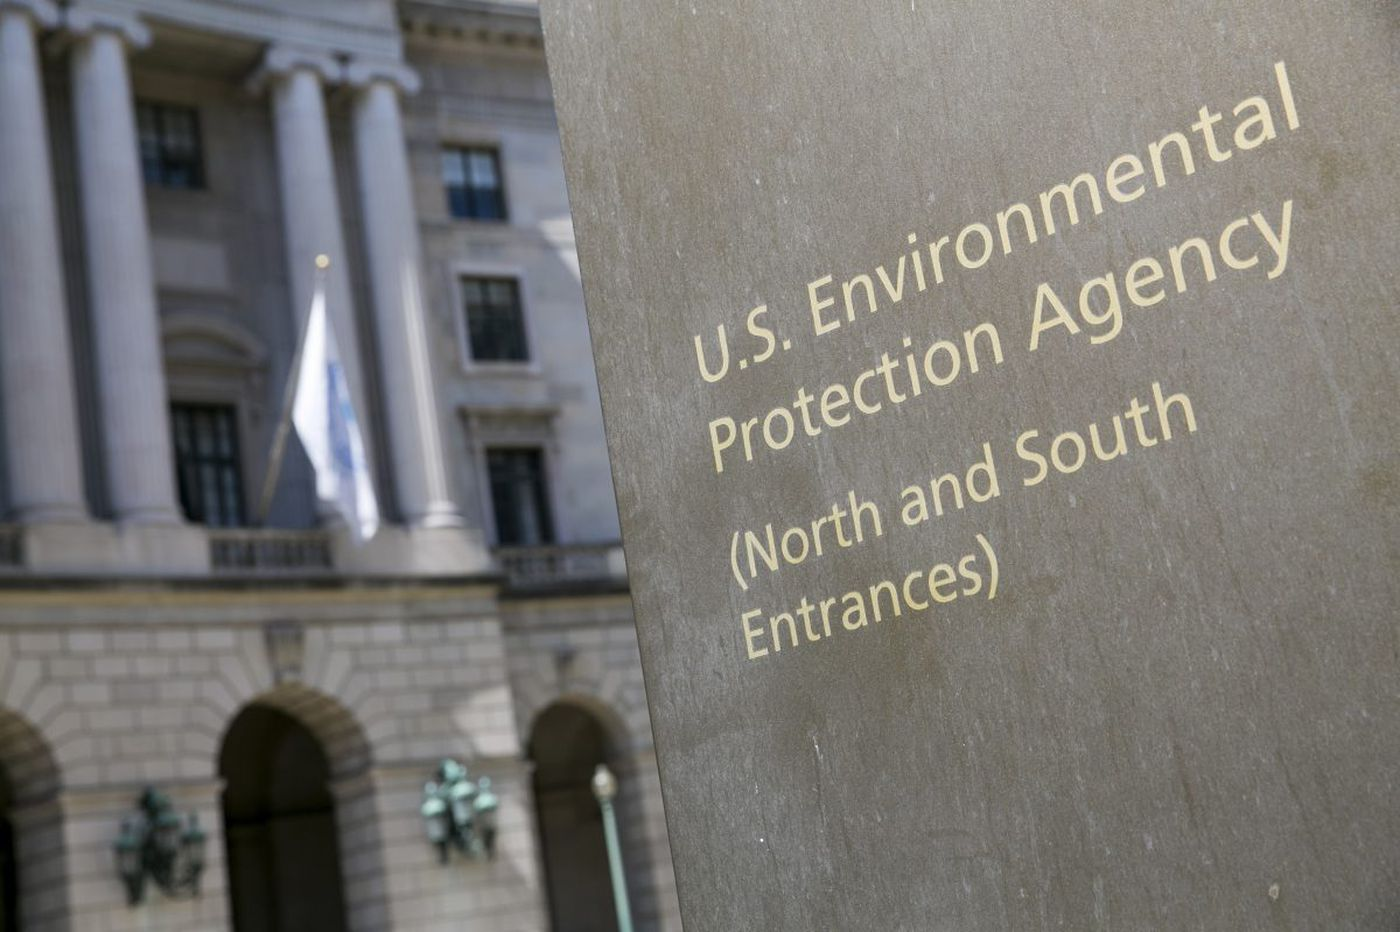 To save jobs, EPA should reform fuel standard